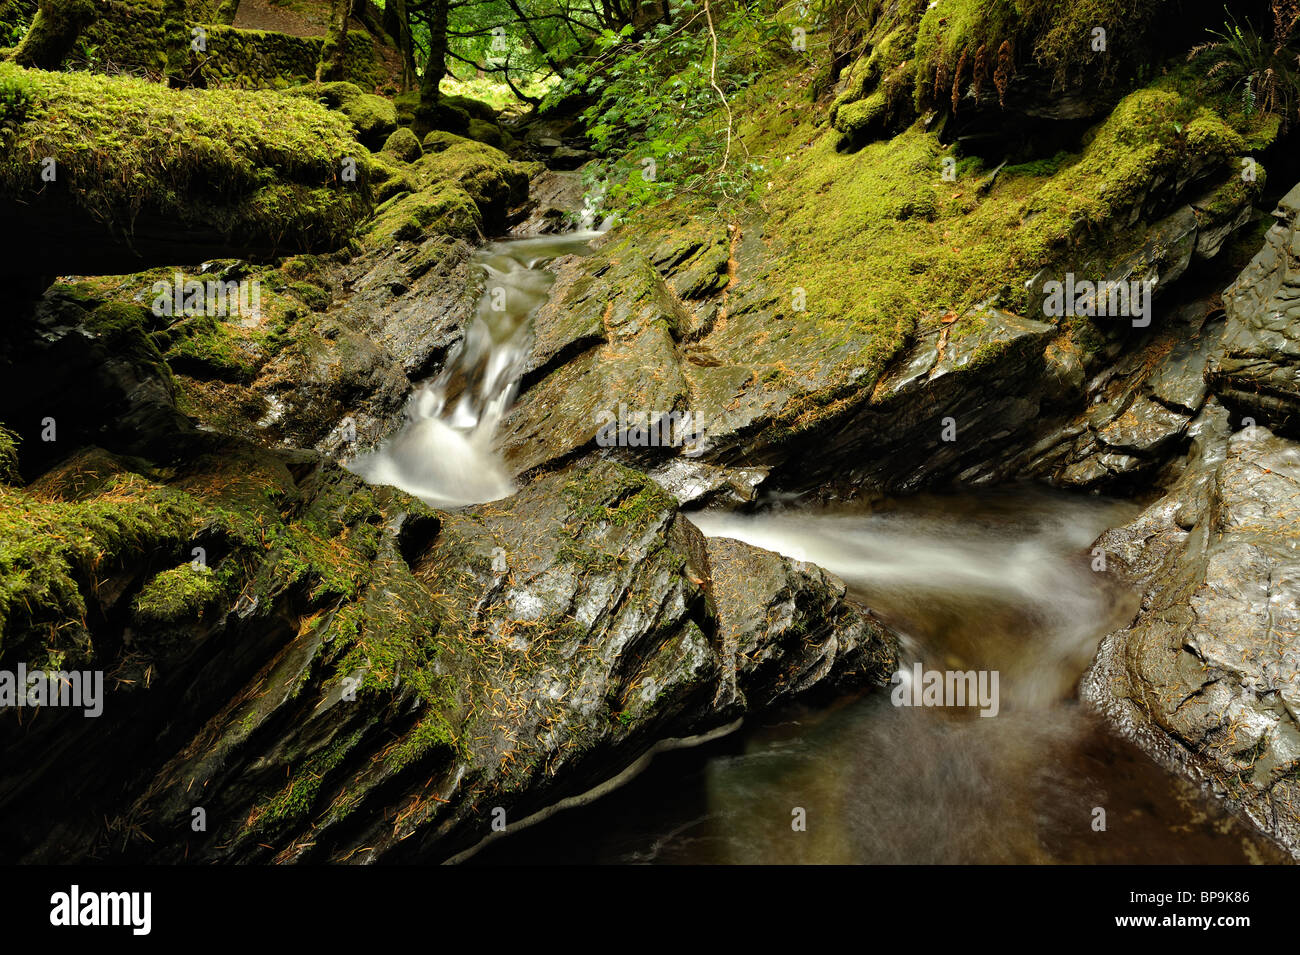 The river Peiran running through Hafod woods in Ceredigion, Wales. - Stock Image